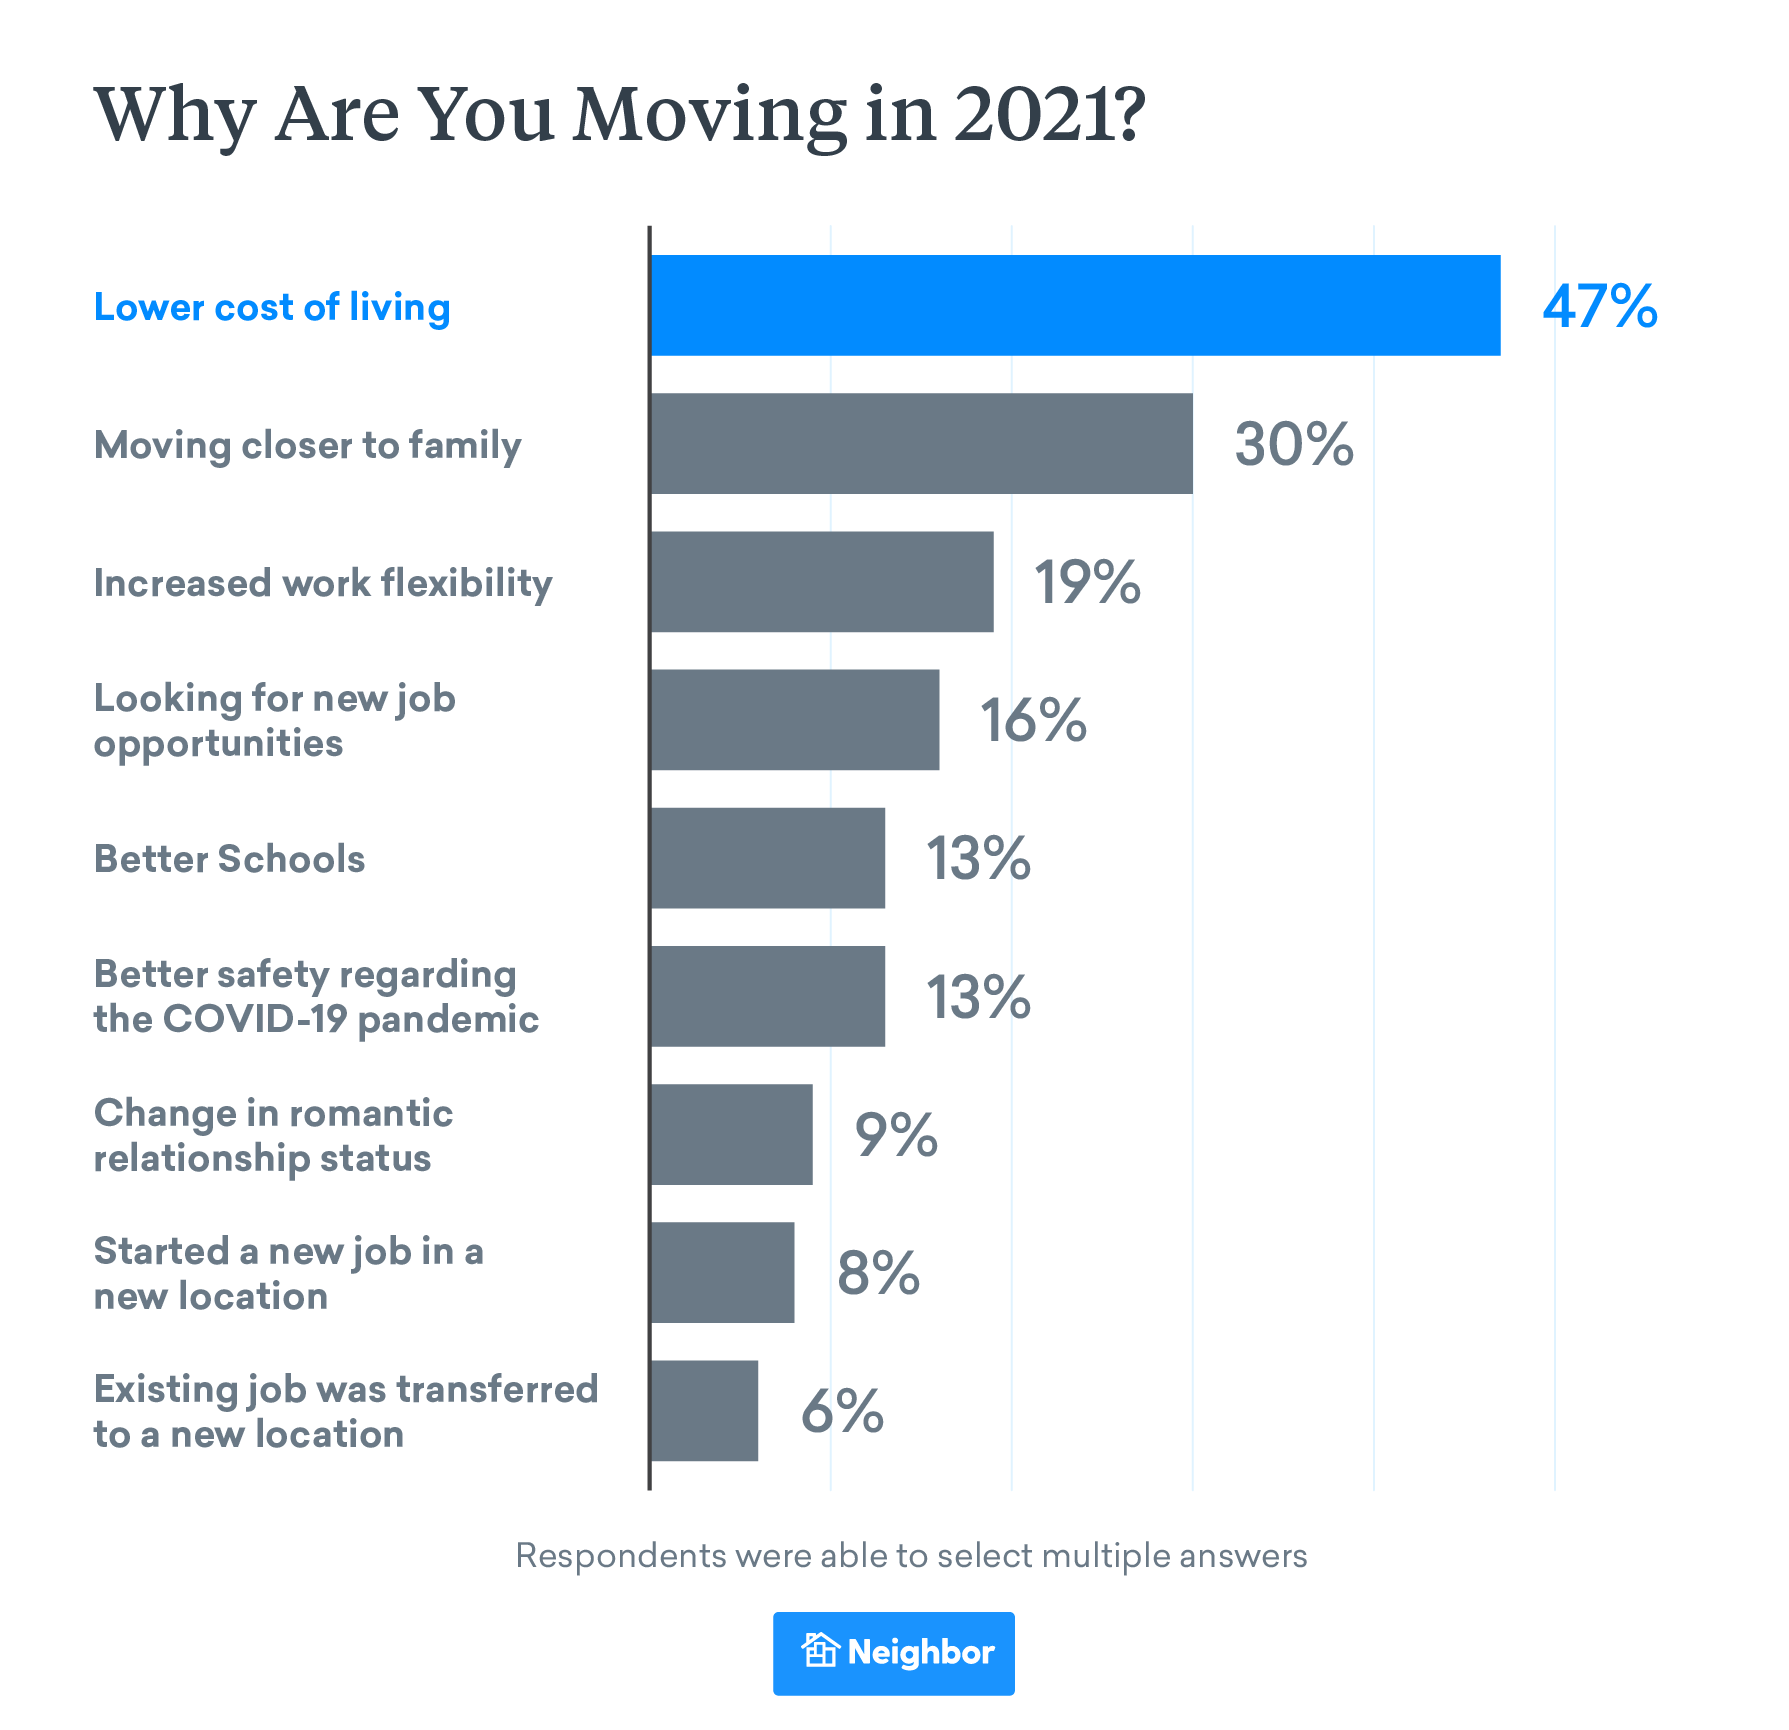 Why Are So Many People Planning to Move in 2021